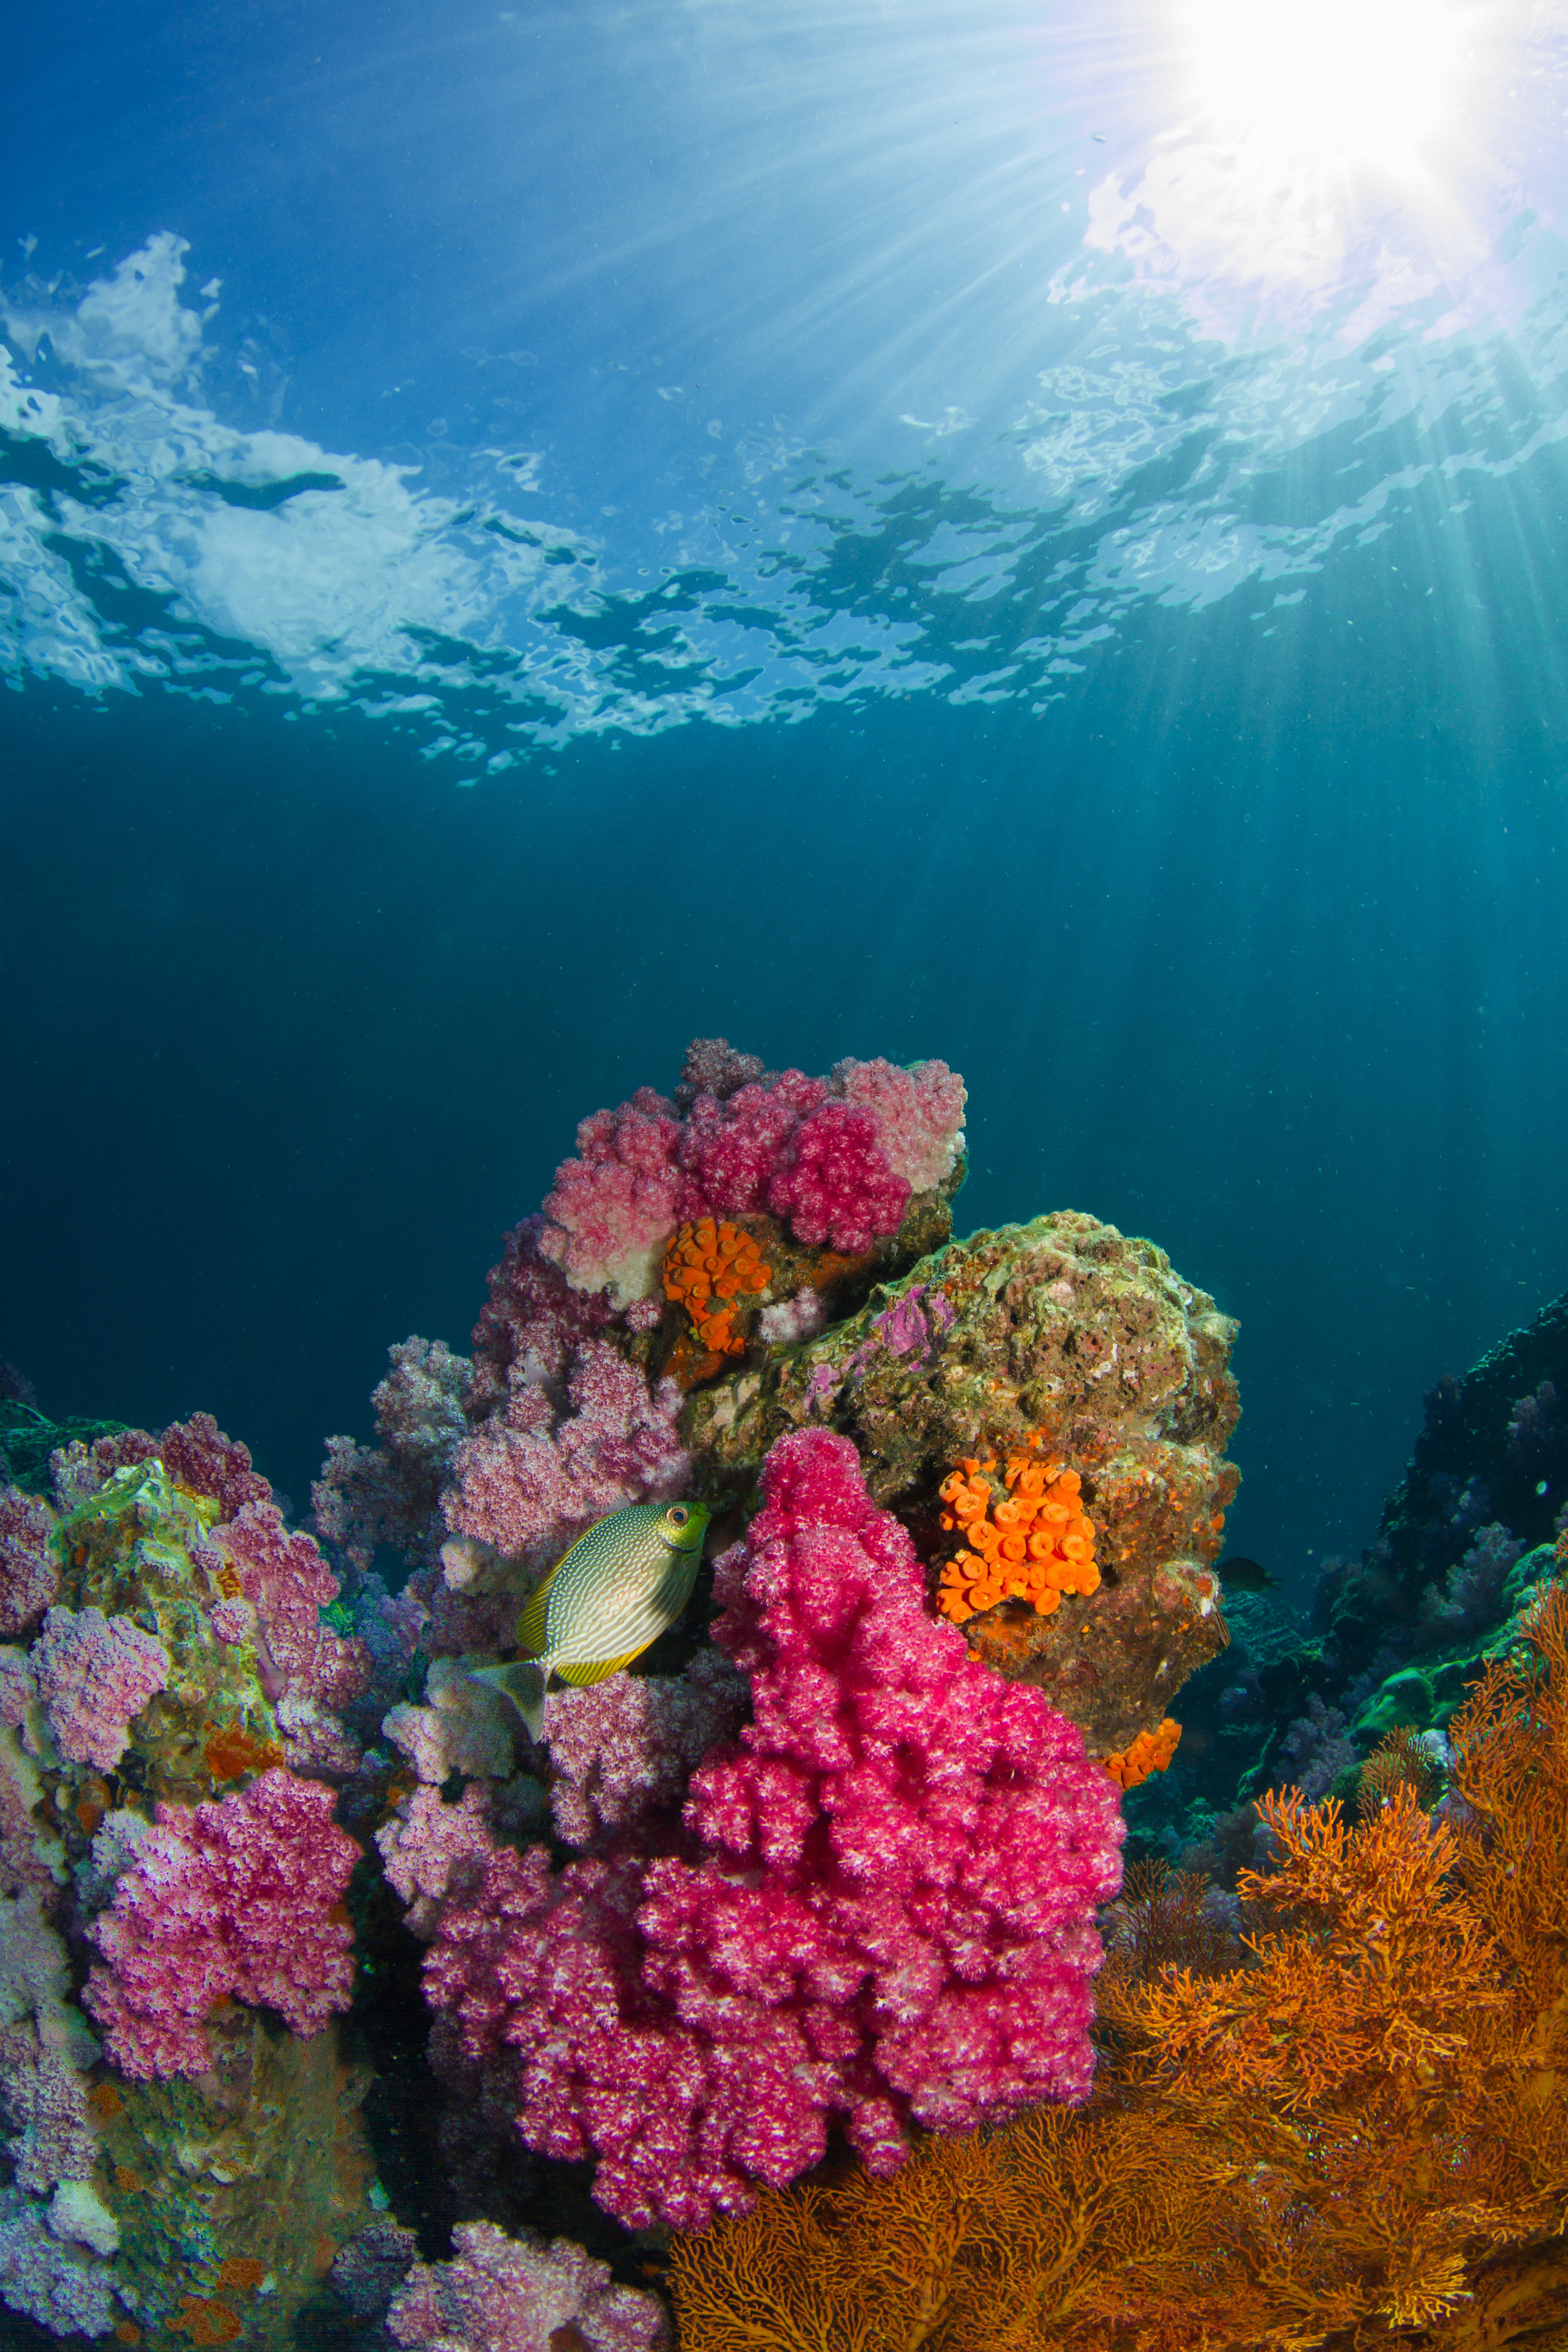 Coral reefs are known for their beautiful colors, which come from the communities of colored algae in their tissues. Photo credit: Milos Prelevic